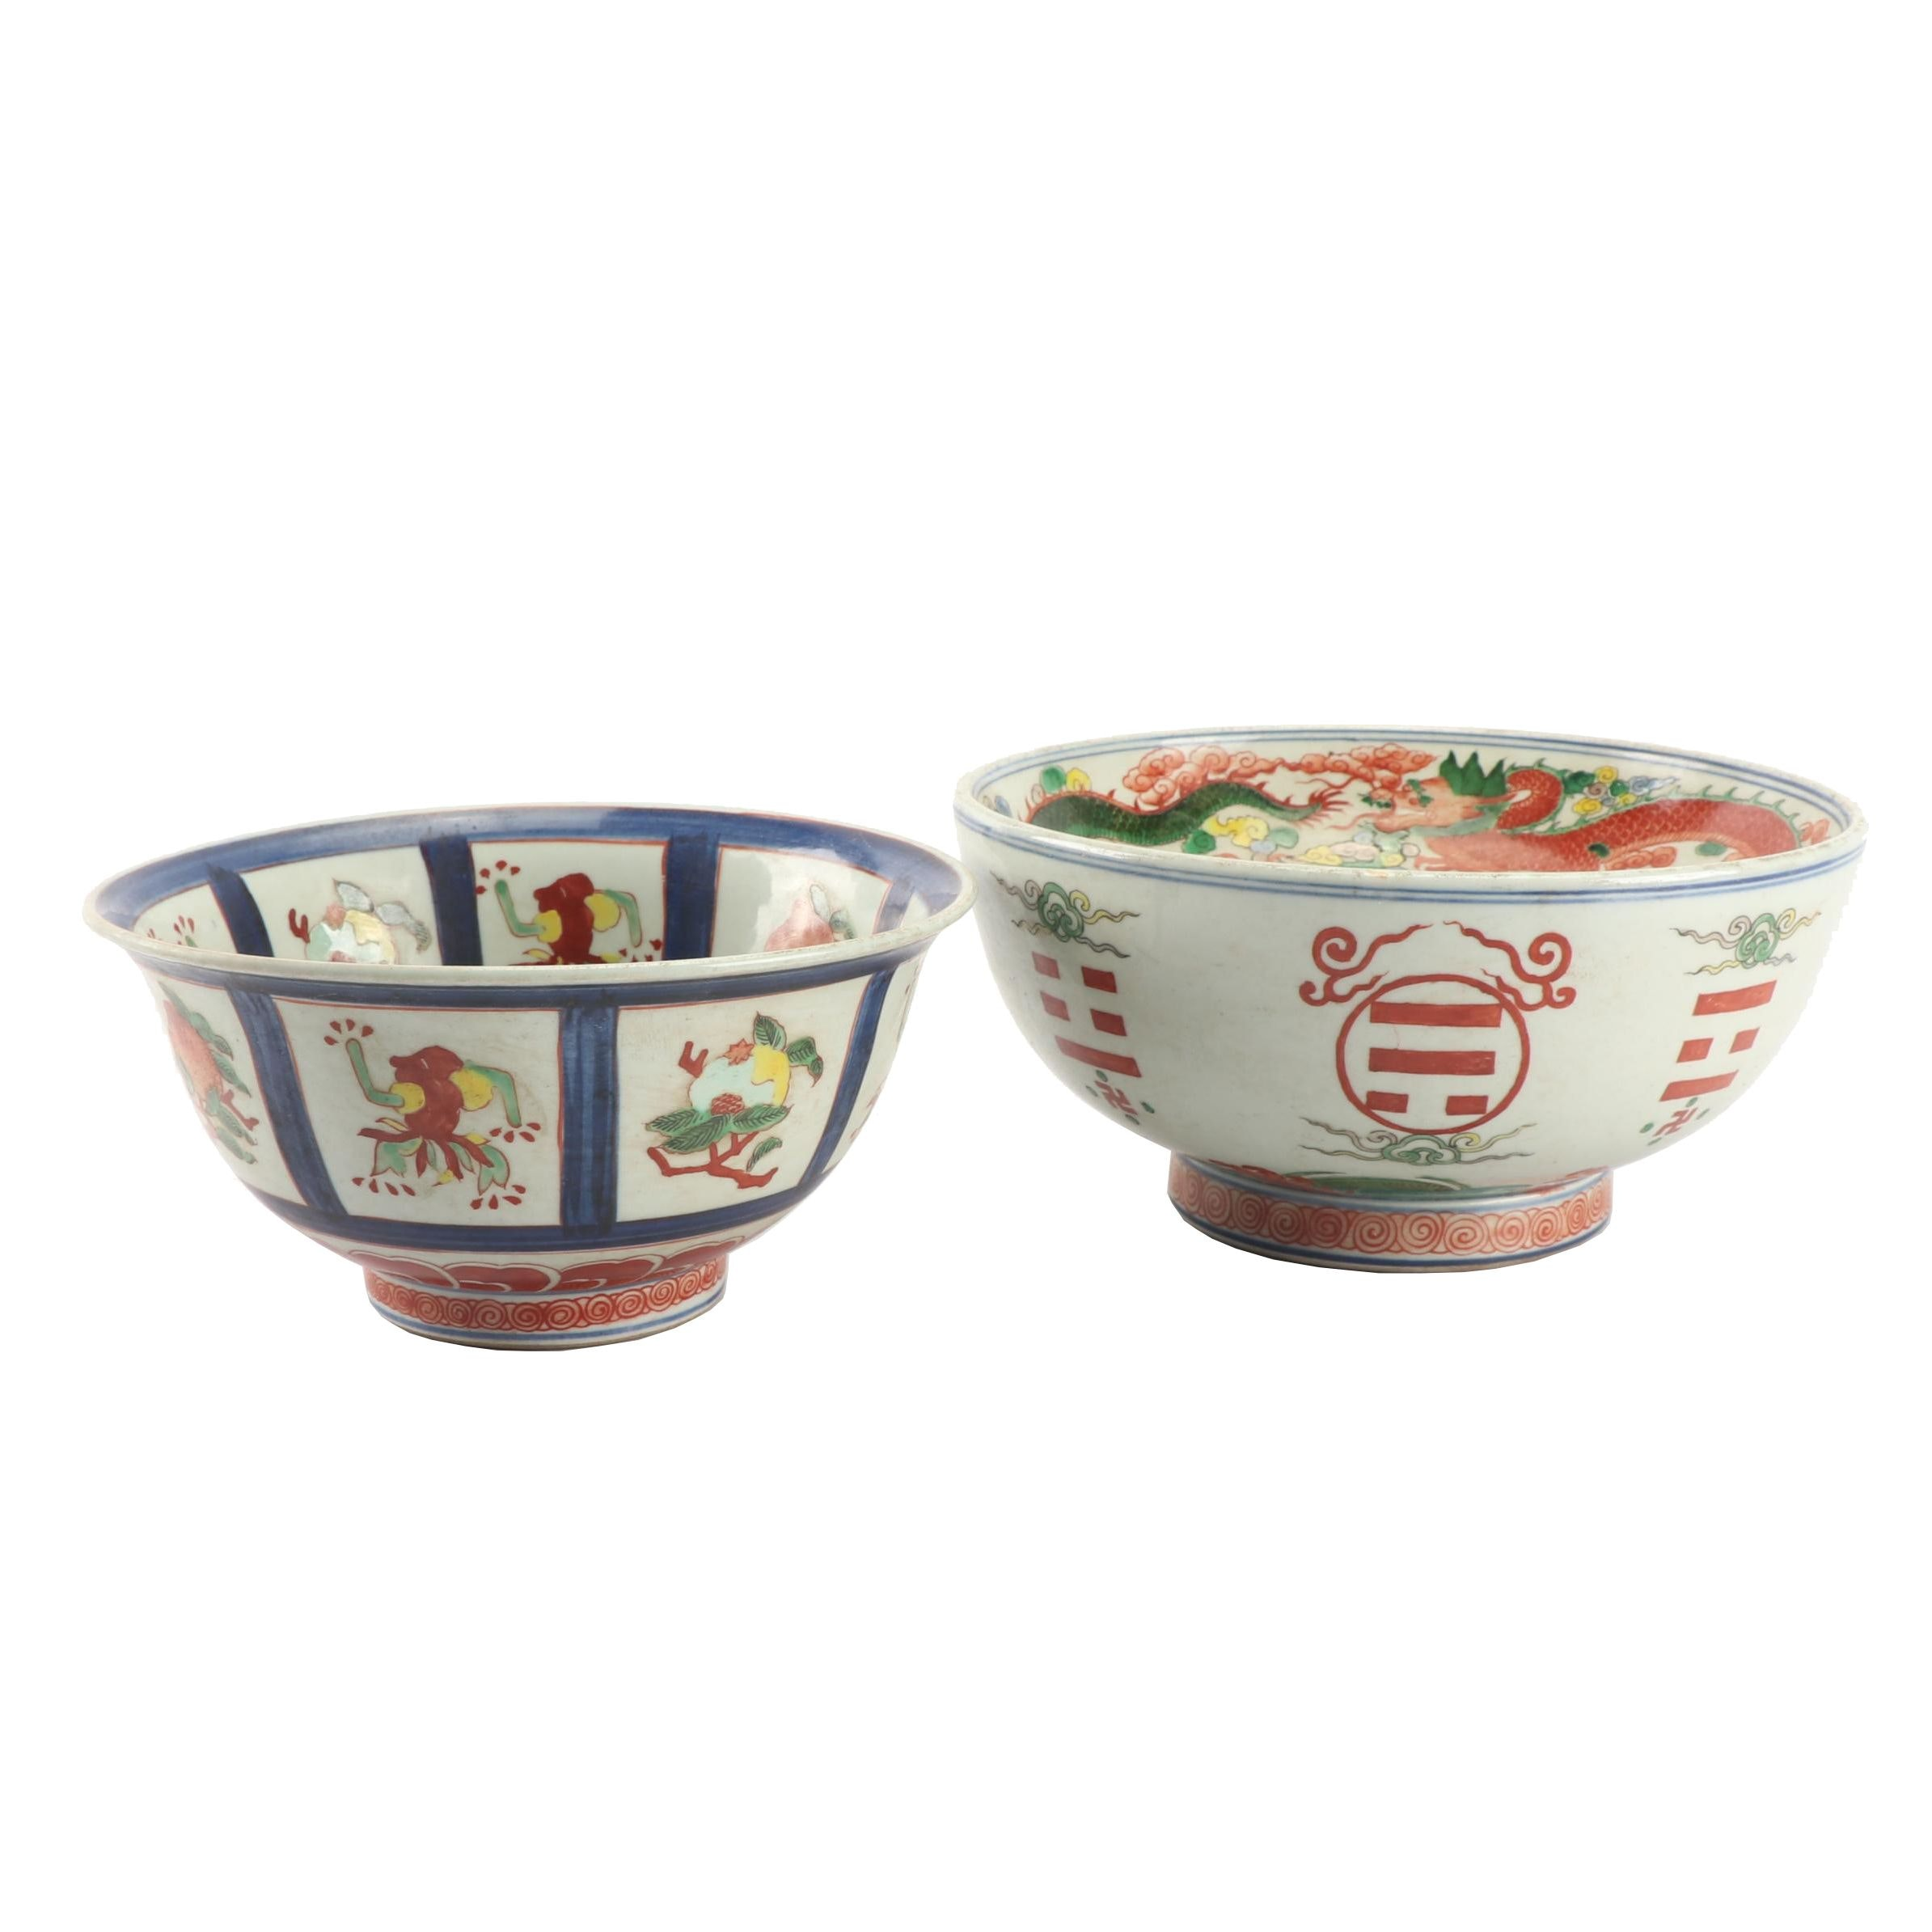 Chinese Hand-Painted Porcelain Bowls